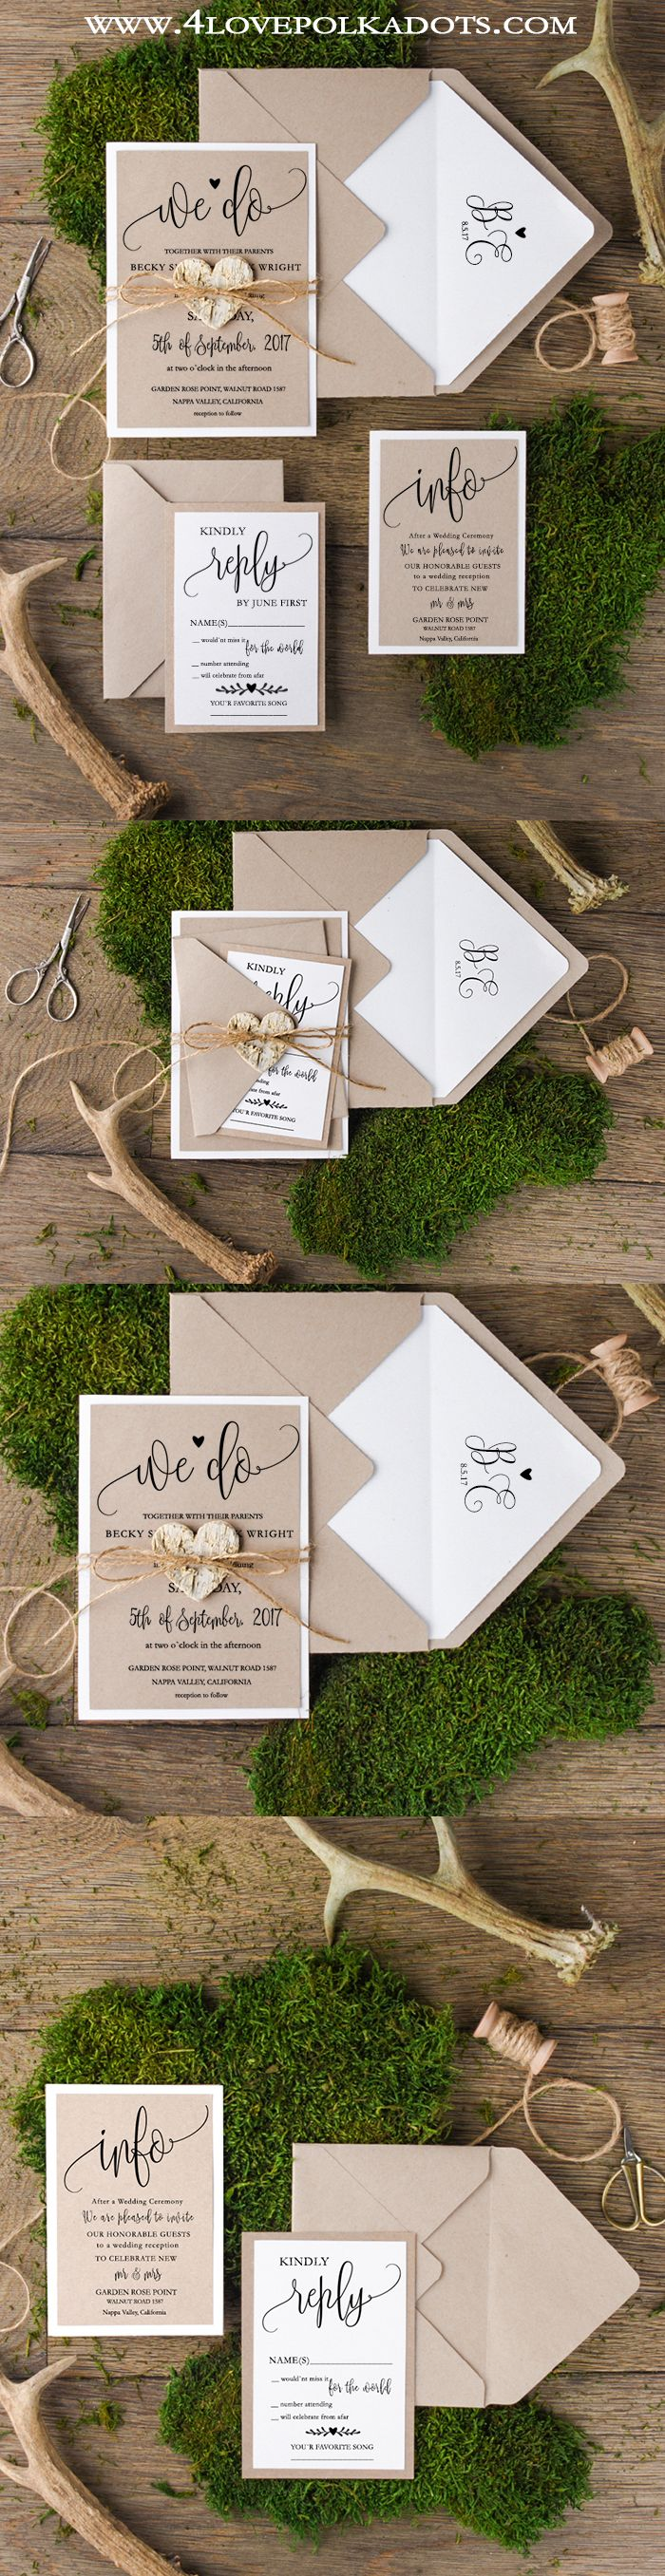 34 Best Invitae Ii Images On Pinterest Card Wedding Invitation